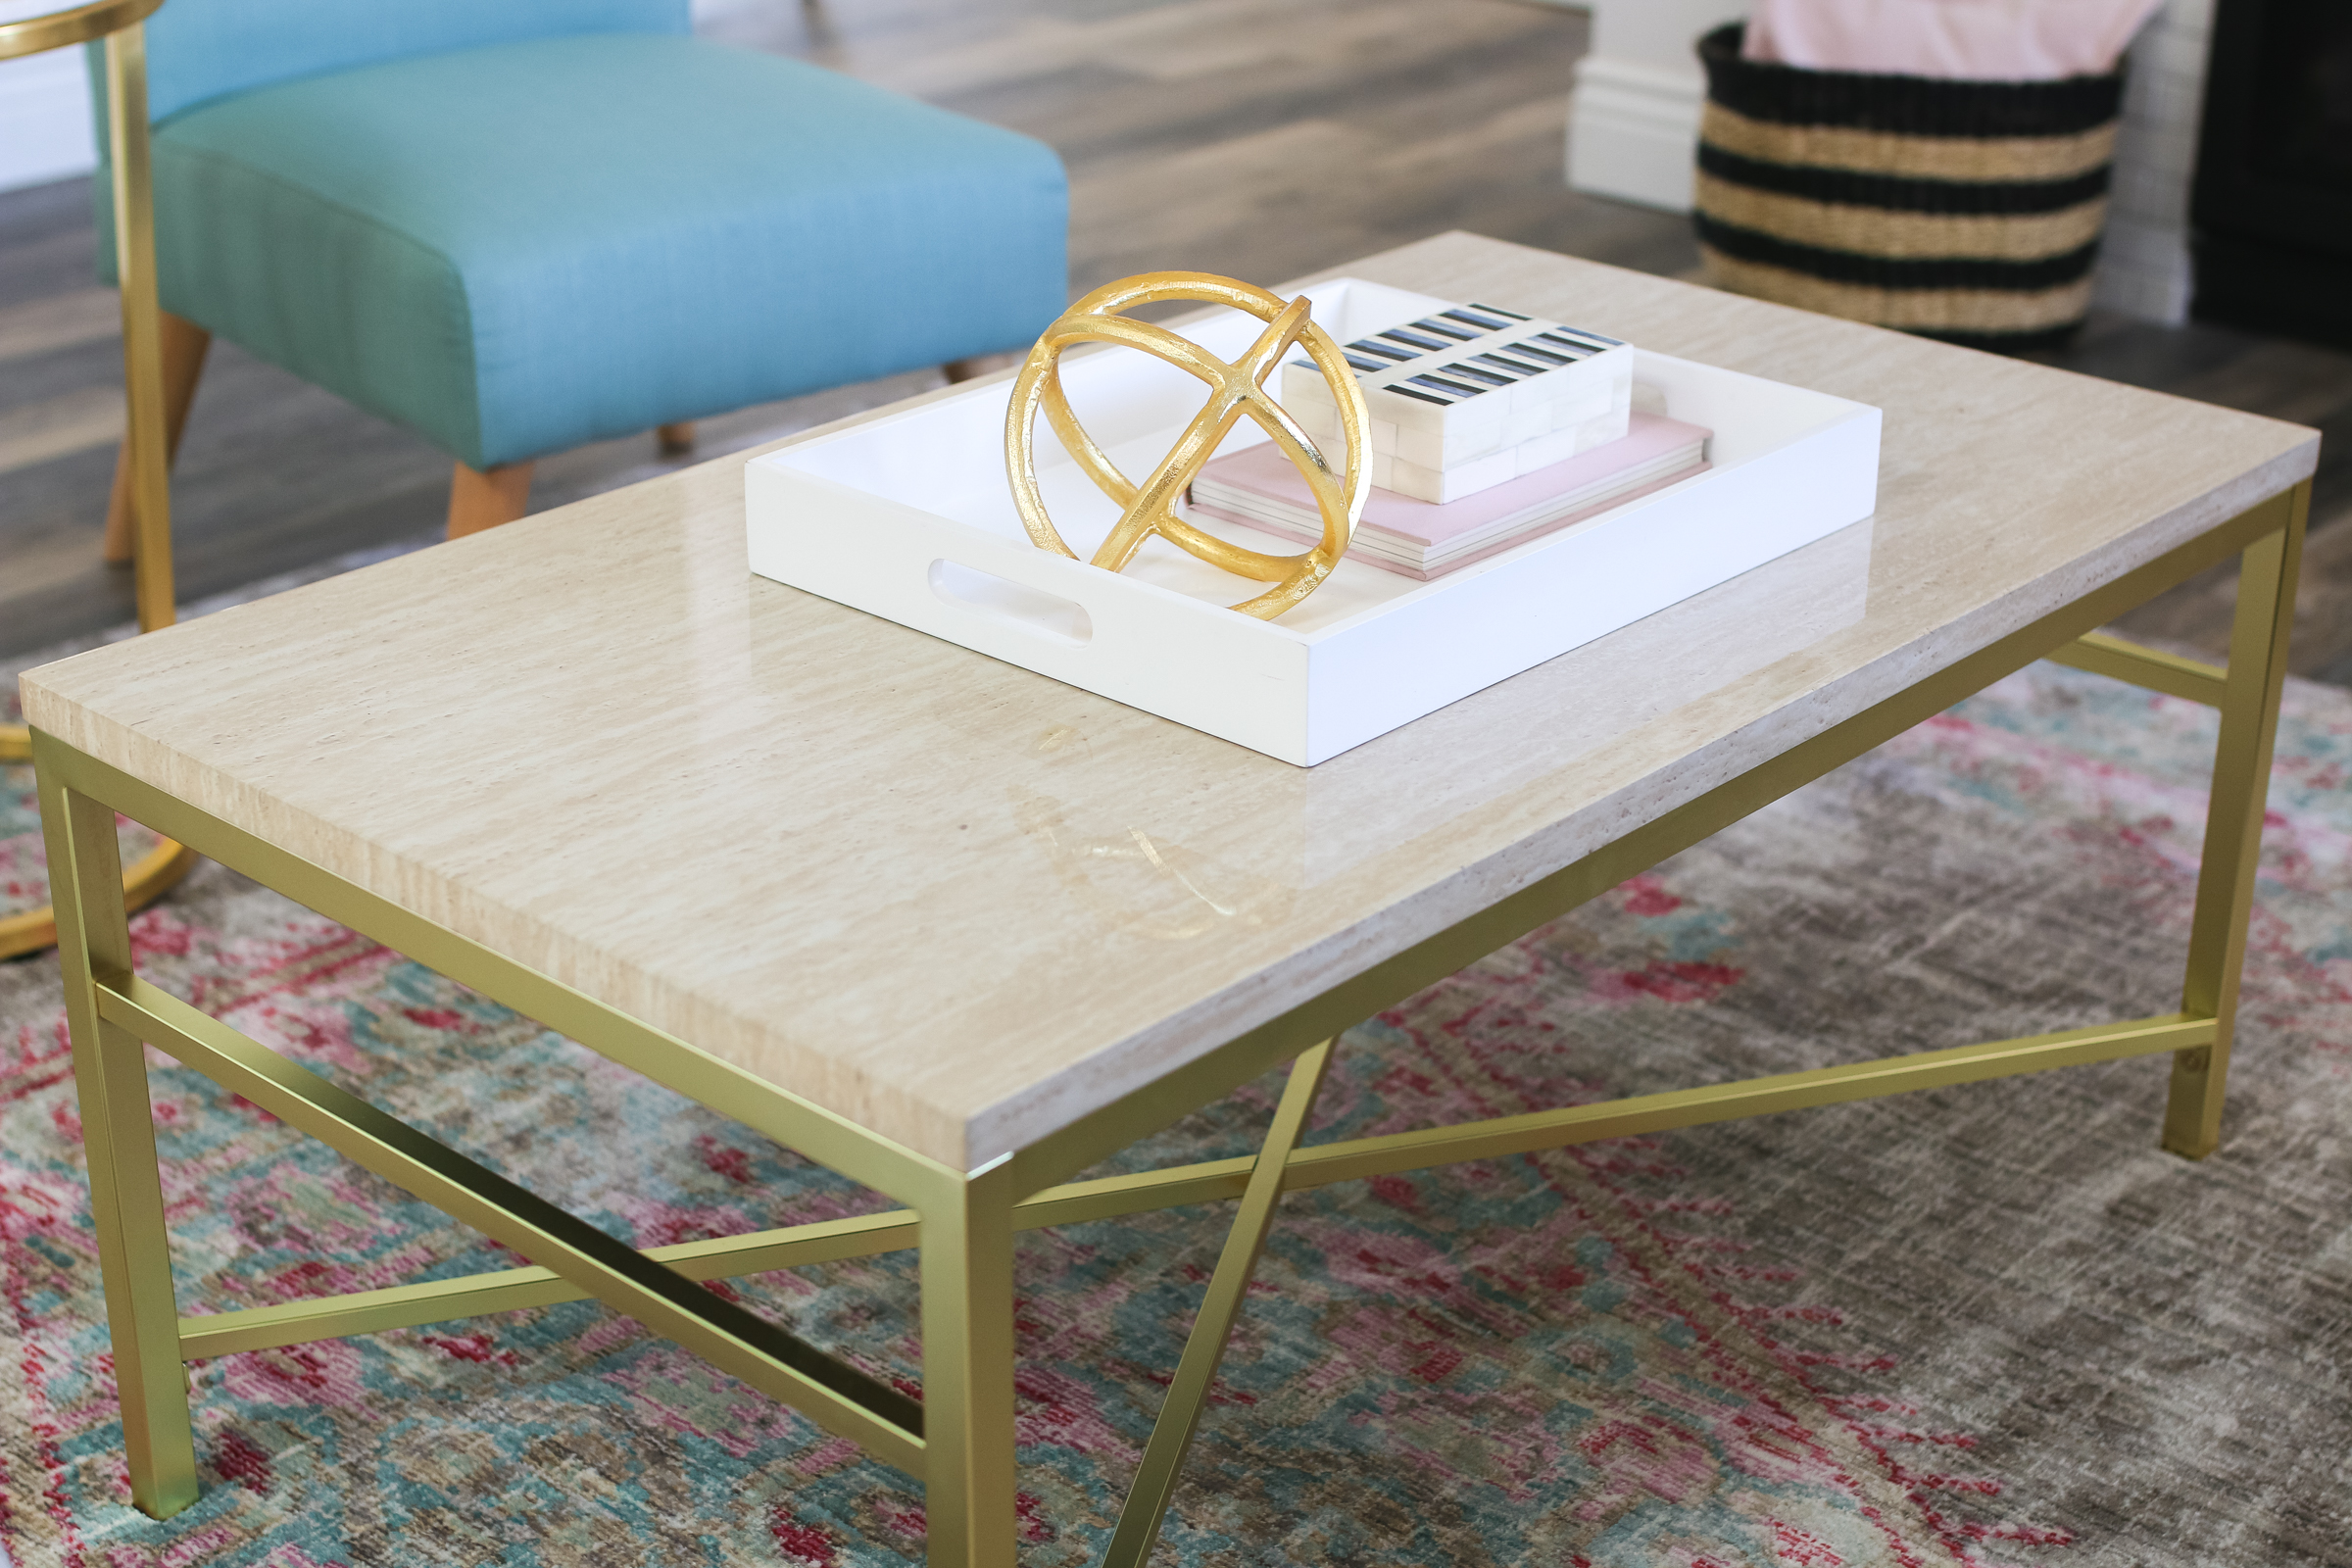 Our New Home Big Reveal: Our Modern Living Room With Hints of Gold by Utah blogger Sandy A La Mode